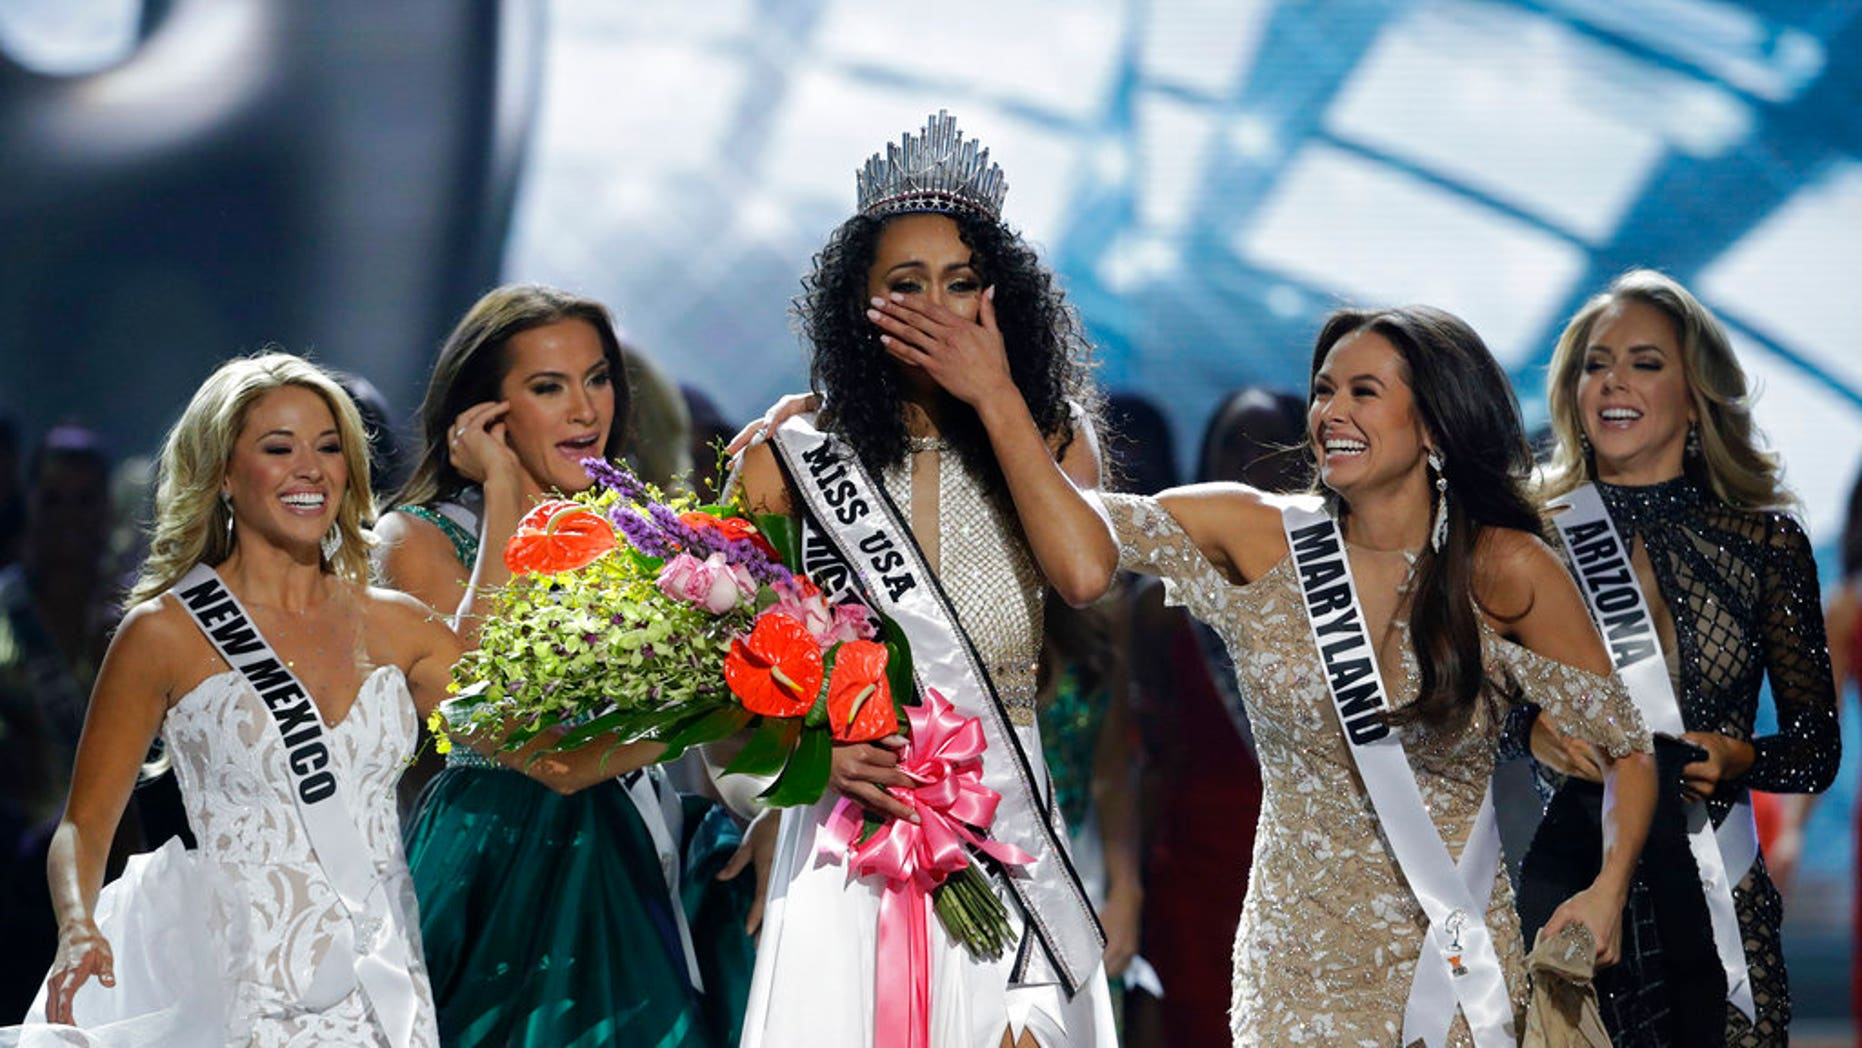 Miss District of Columbia USA Kara McCullough reacts after she was crowned the new Miss USA during the Miss USA contest Sunday, May 14, 2017, in Las Vegas.